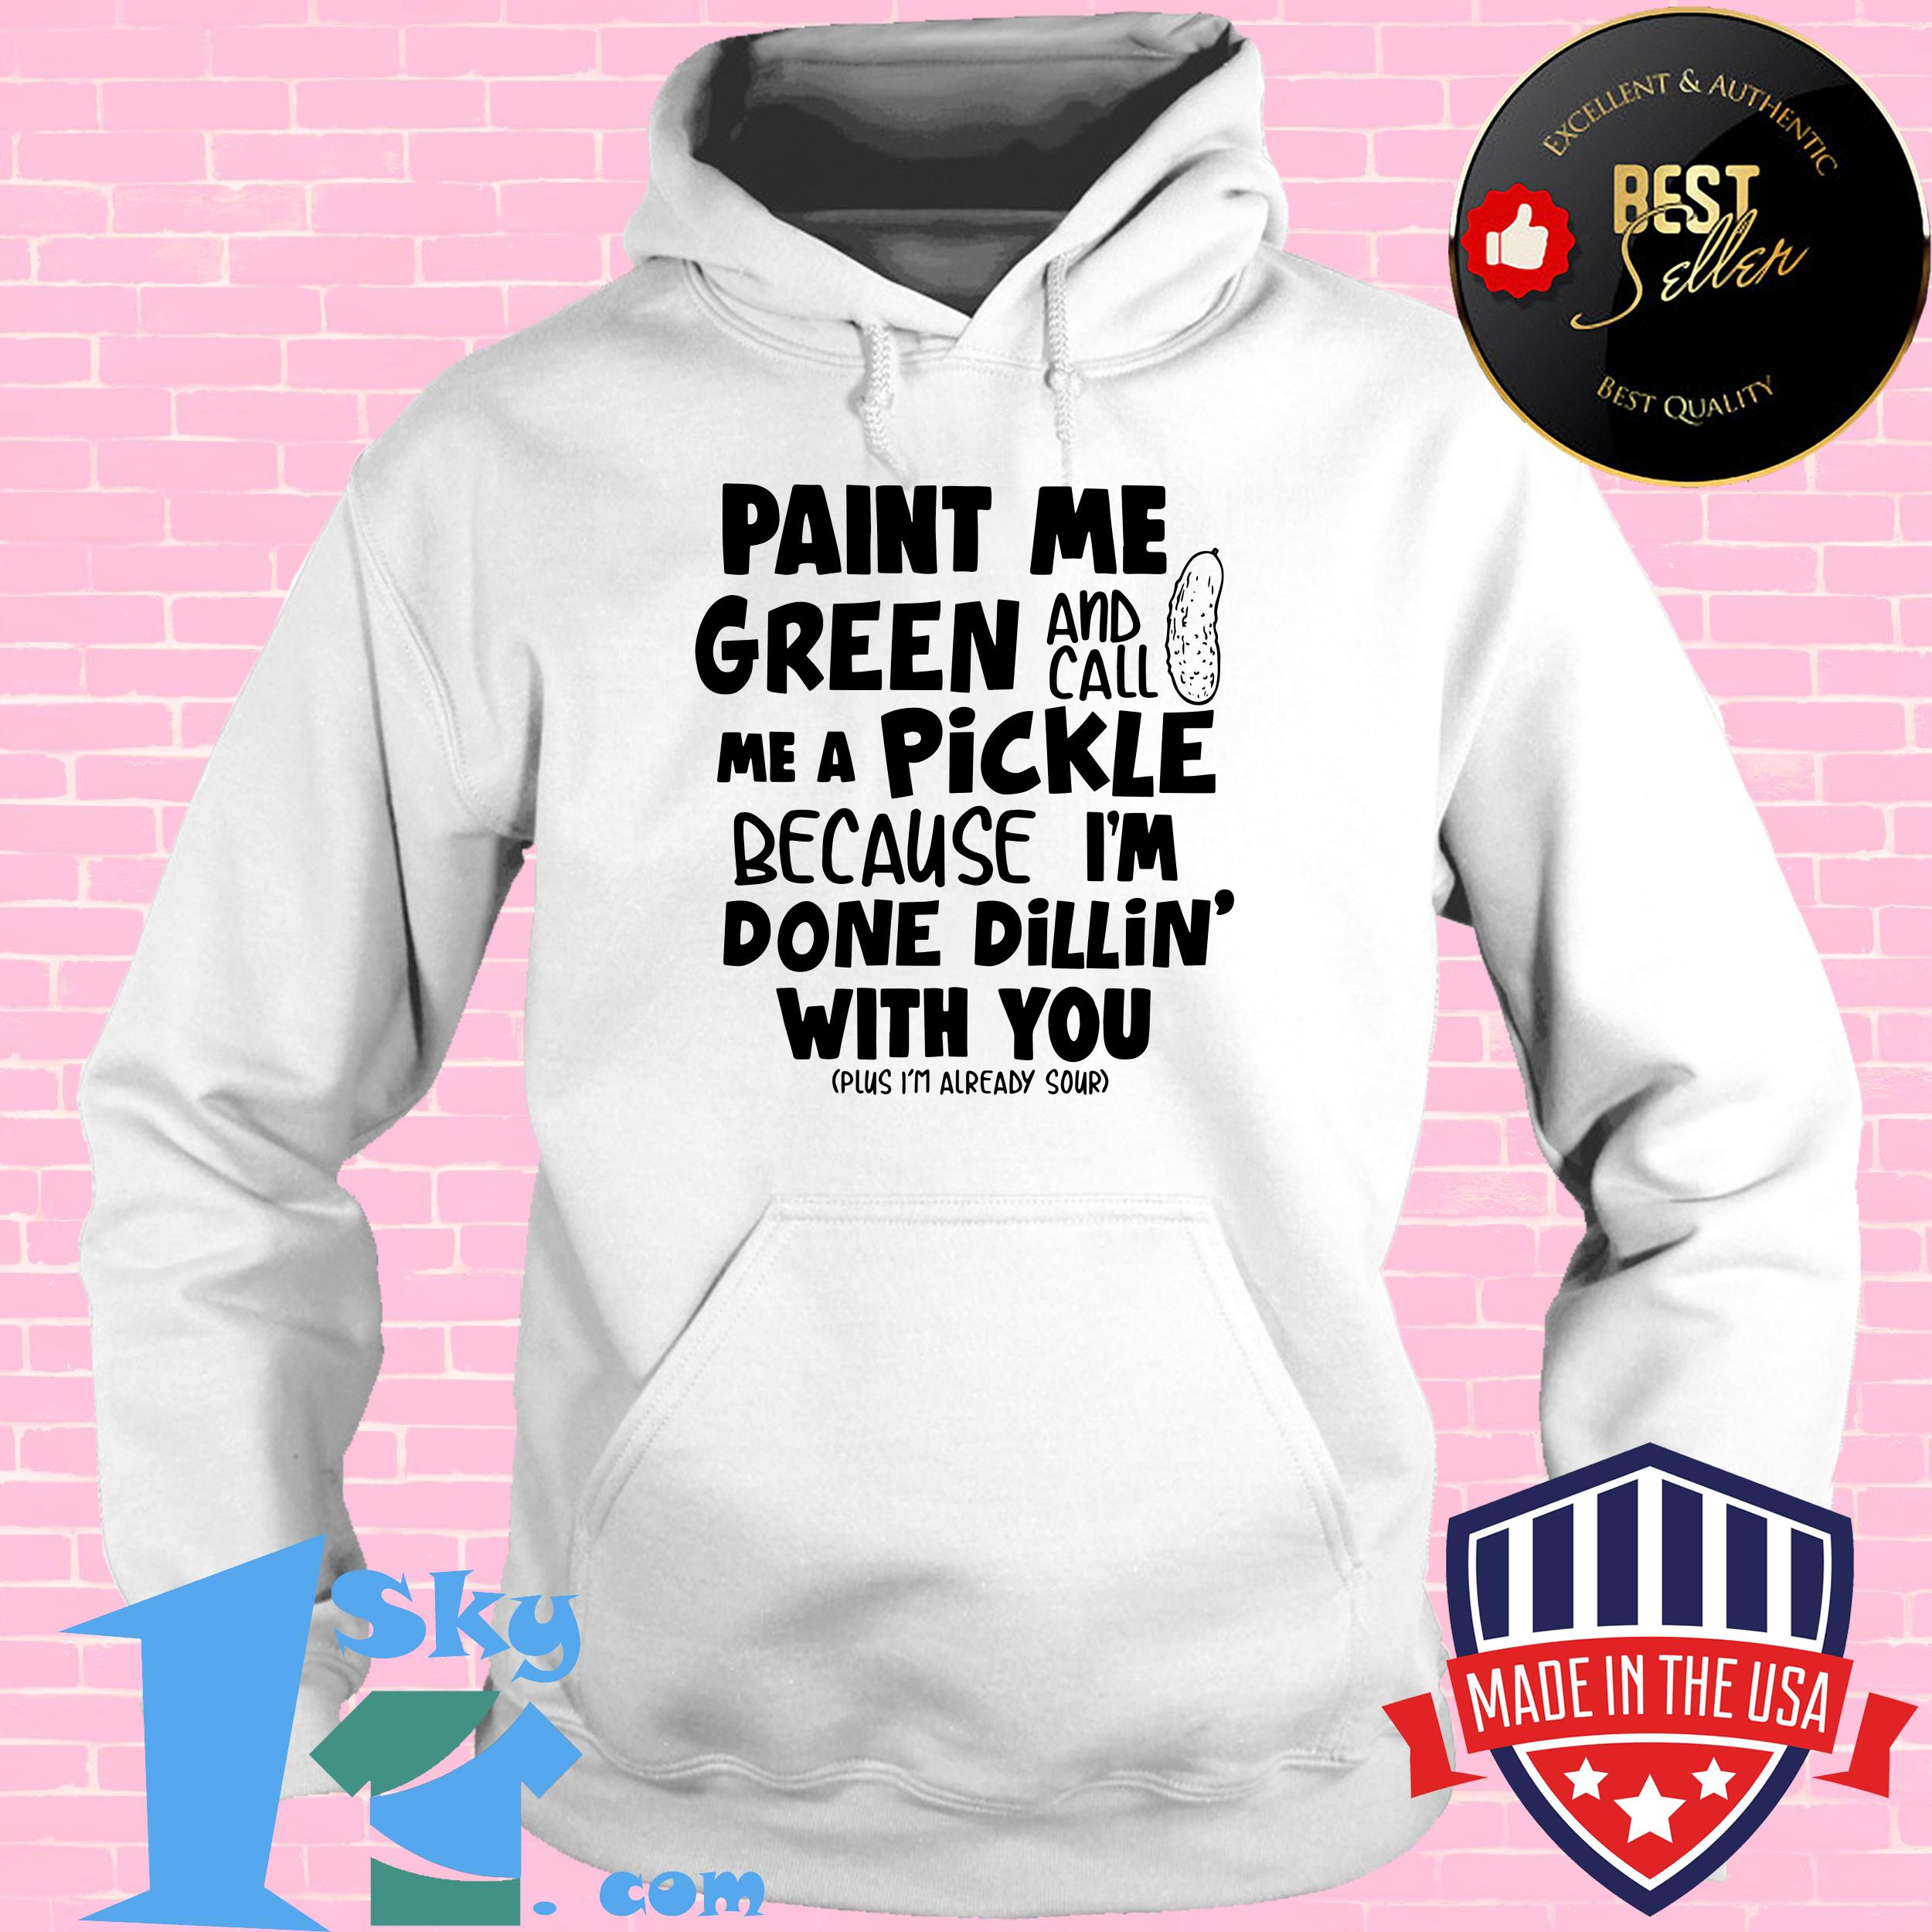 Paint me green and call me a pickle because I'm done dillin' with you shirt